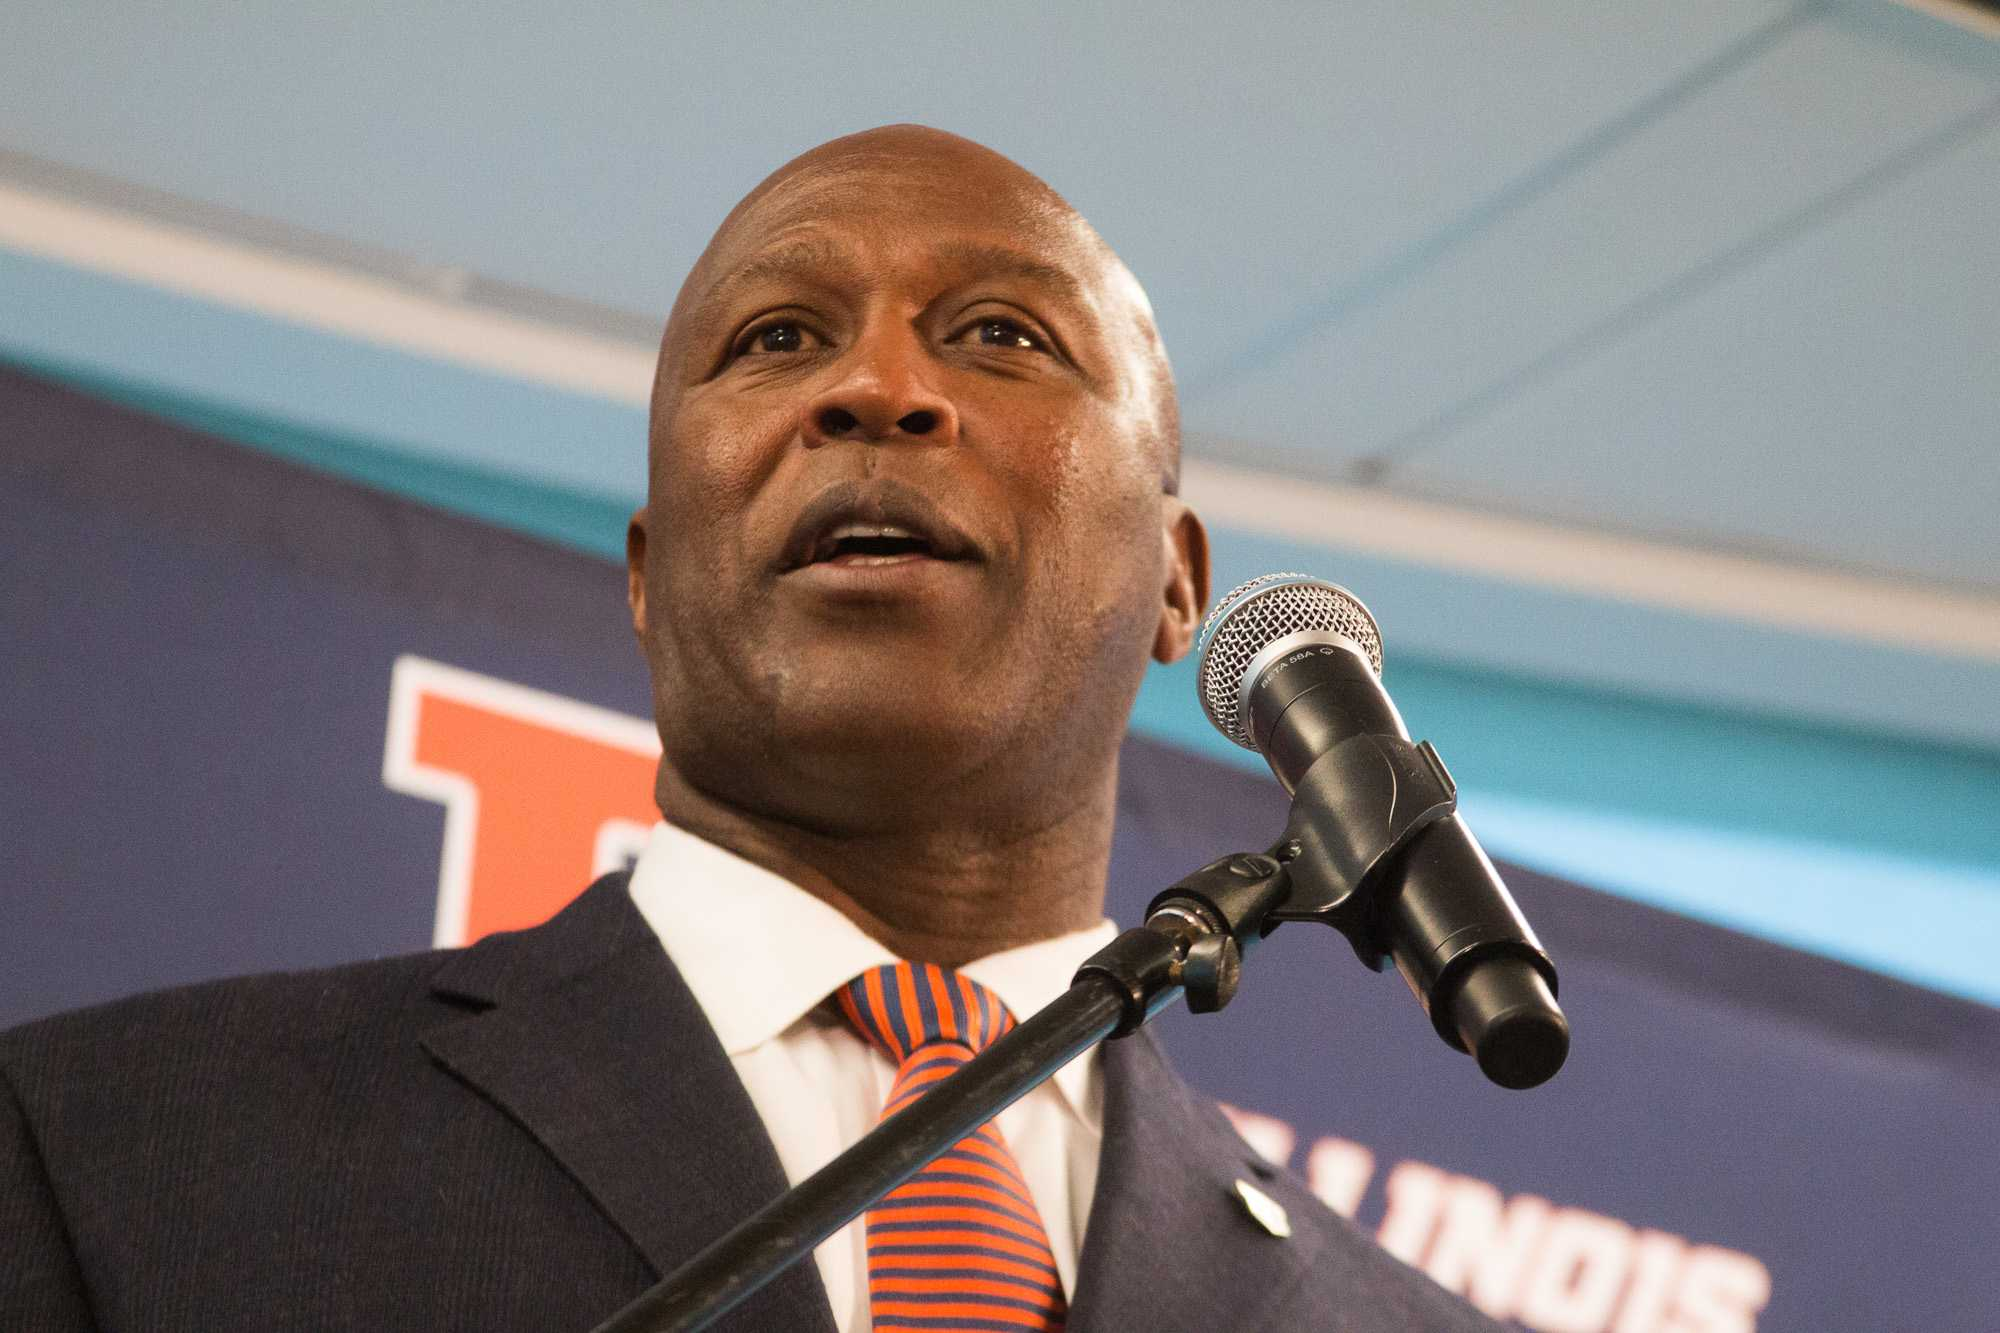 Lovie Smith responds to questions at his press conference on Monday, March 7, 2016.